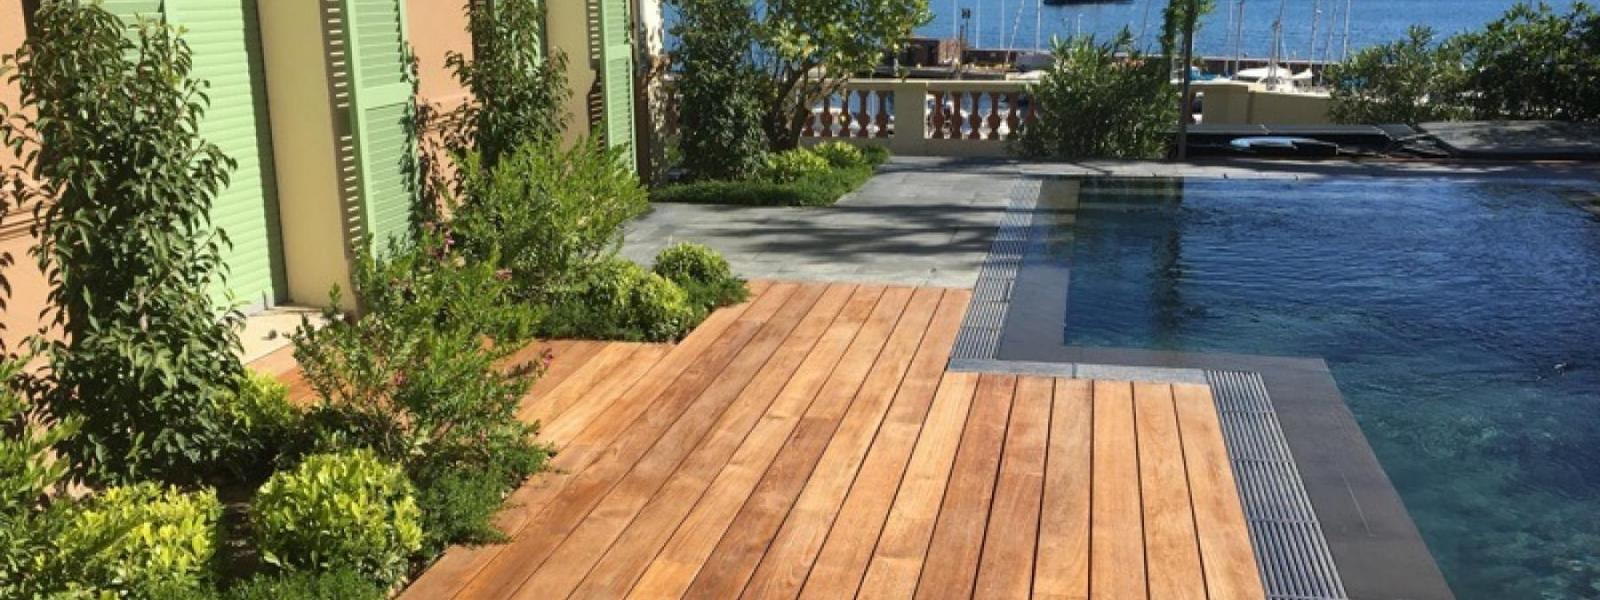 Creation of wooden decks - theoule-sur-mer - Exo Jardin